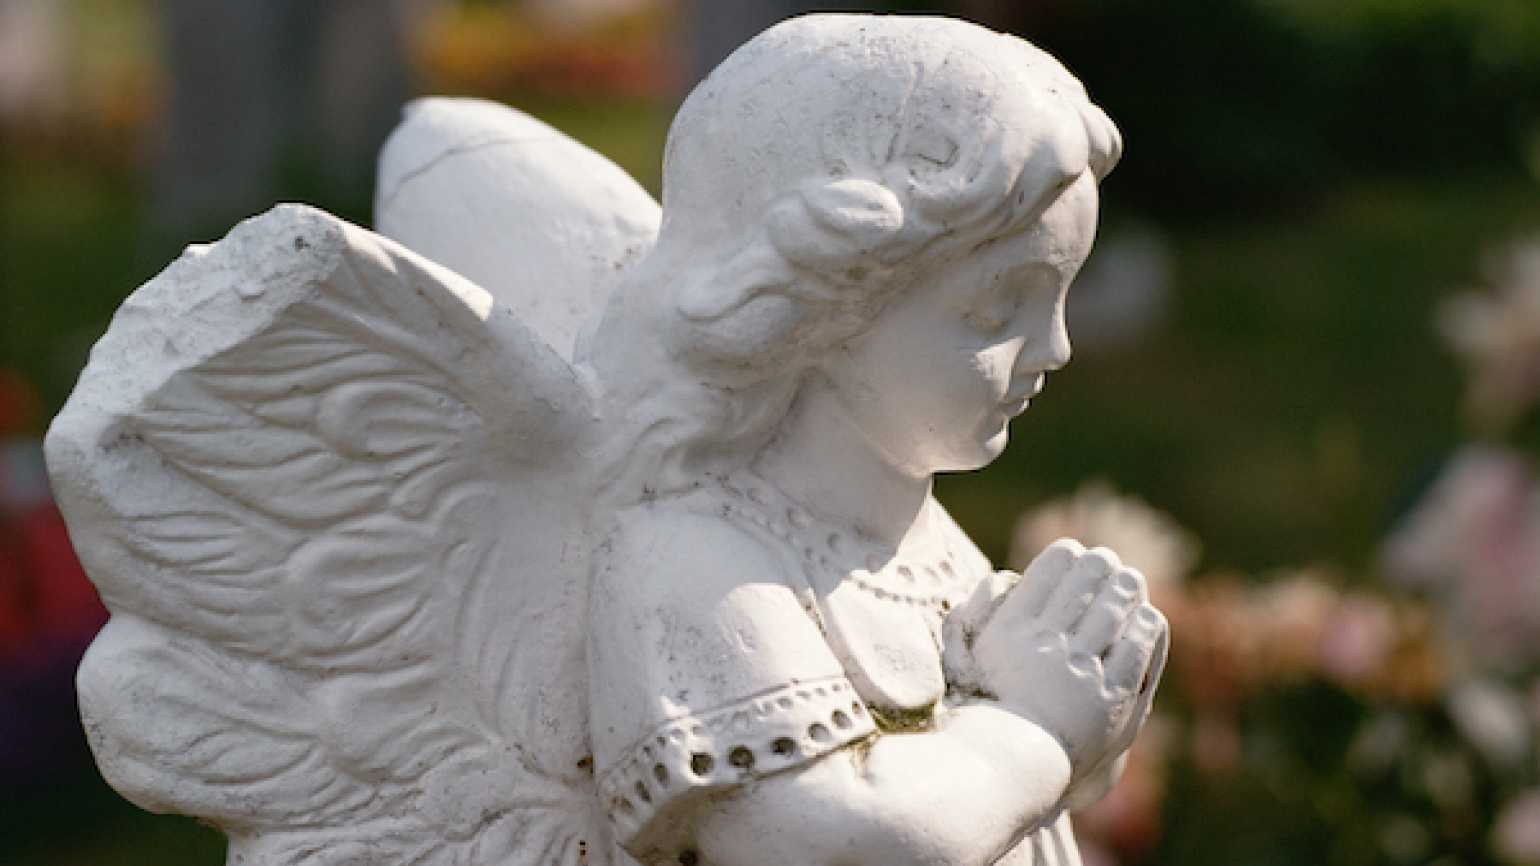 An early morning nudge from a guardian angel saves a family from a house fire.